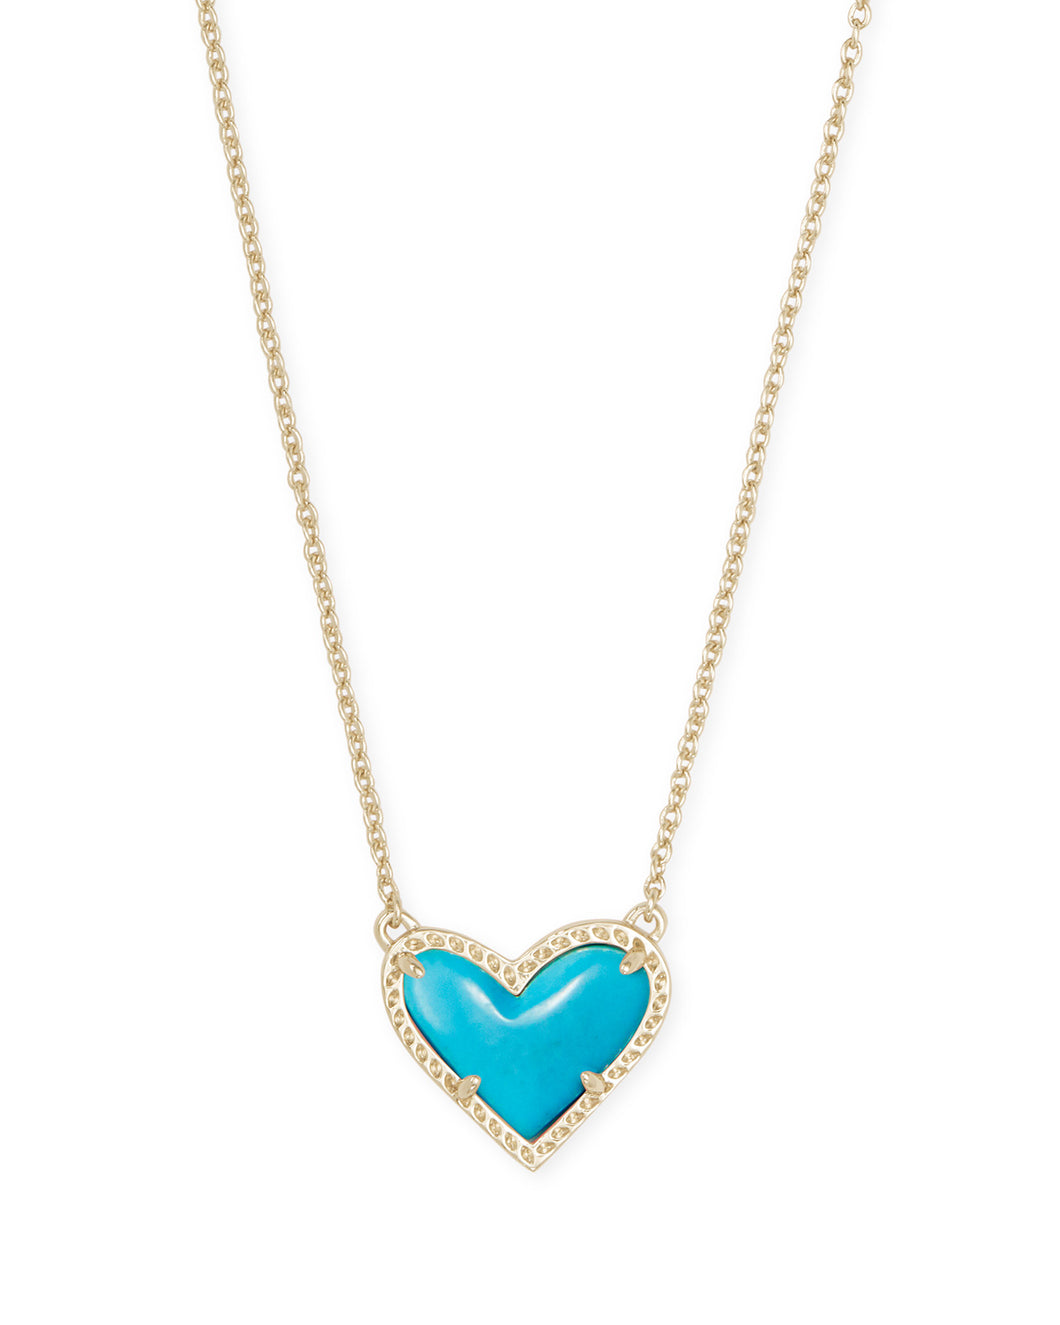 Kendra Scott Ari Heart Short Pendant in Turquoise